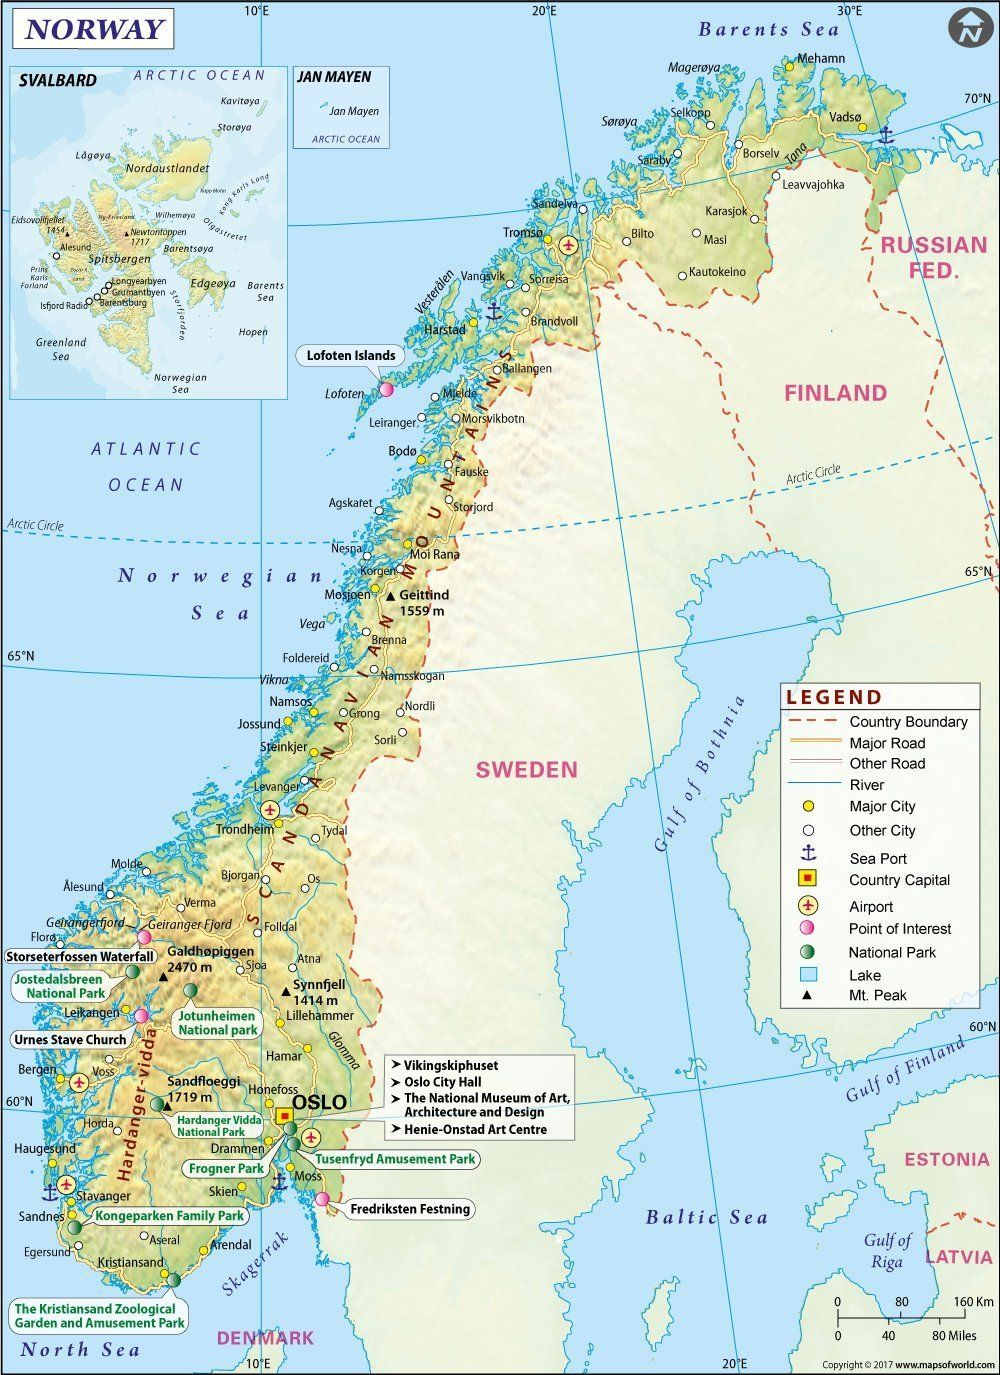 Mow Amz On Twitter Norway Map Norway Norway Travel